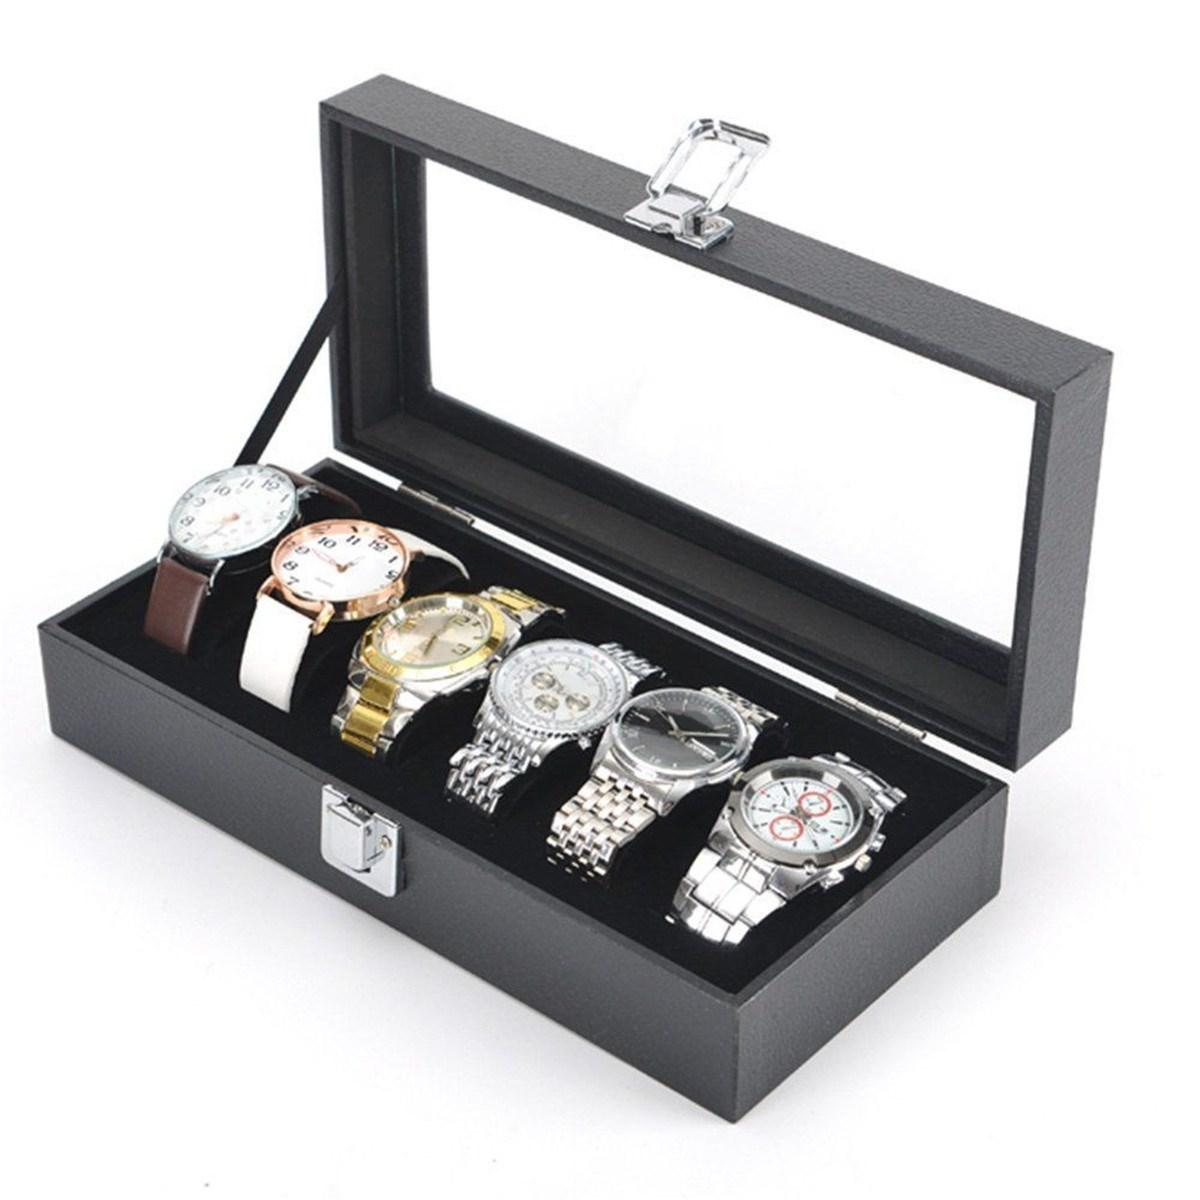 Watch Box Display Jewelry Wrist Case New Black 6 Grid Slots Watches Storage Collection Organizer Boxes Holder Glass Windowed